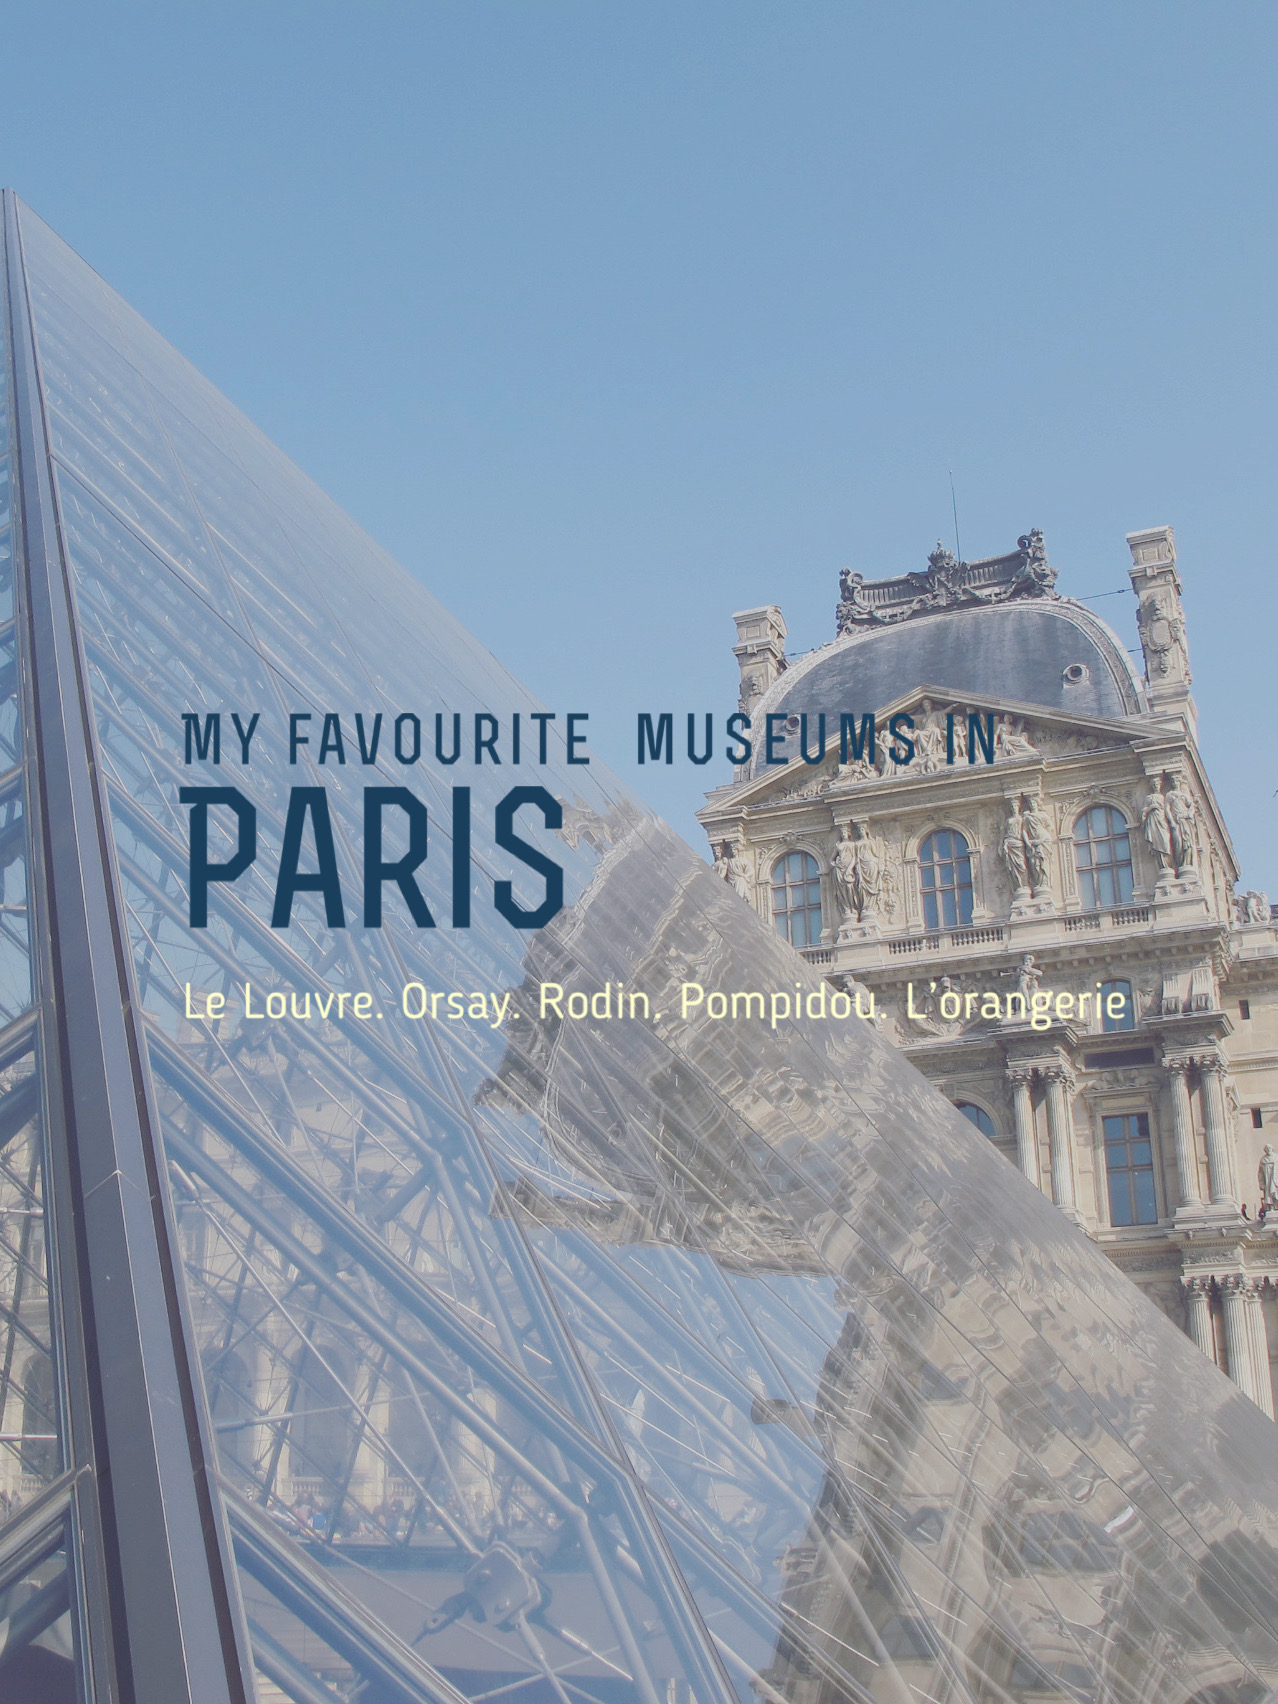 How to Plan Your Own Art Tour in Paris with a Museum Pass